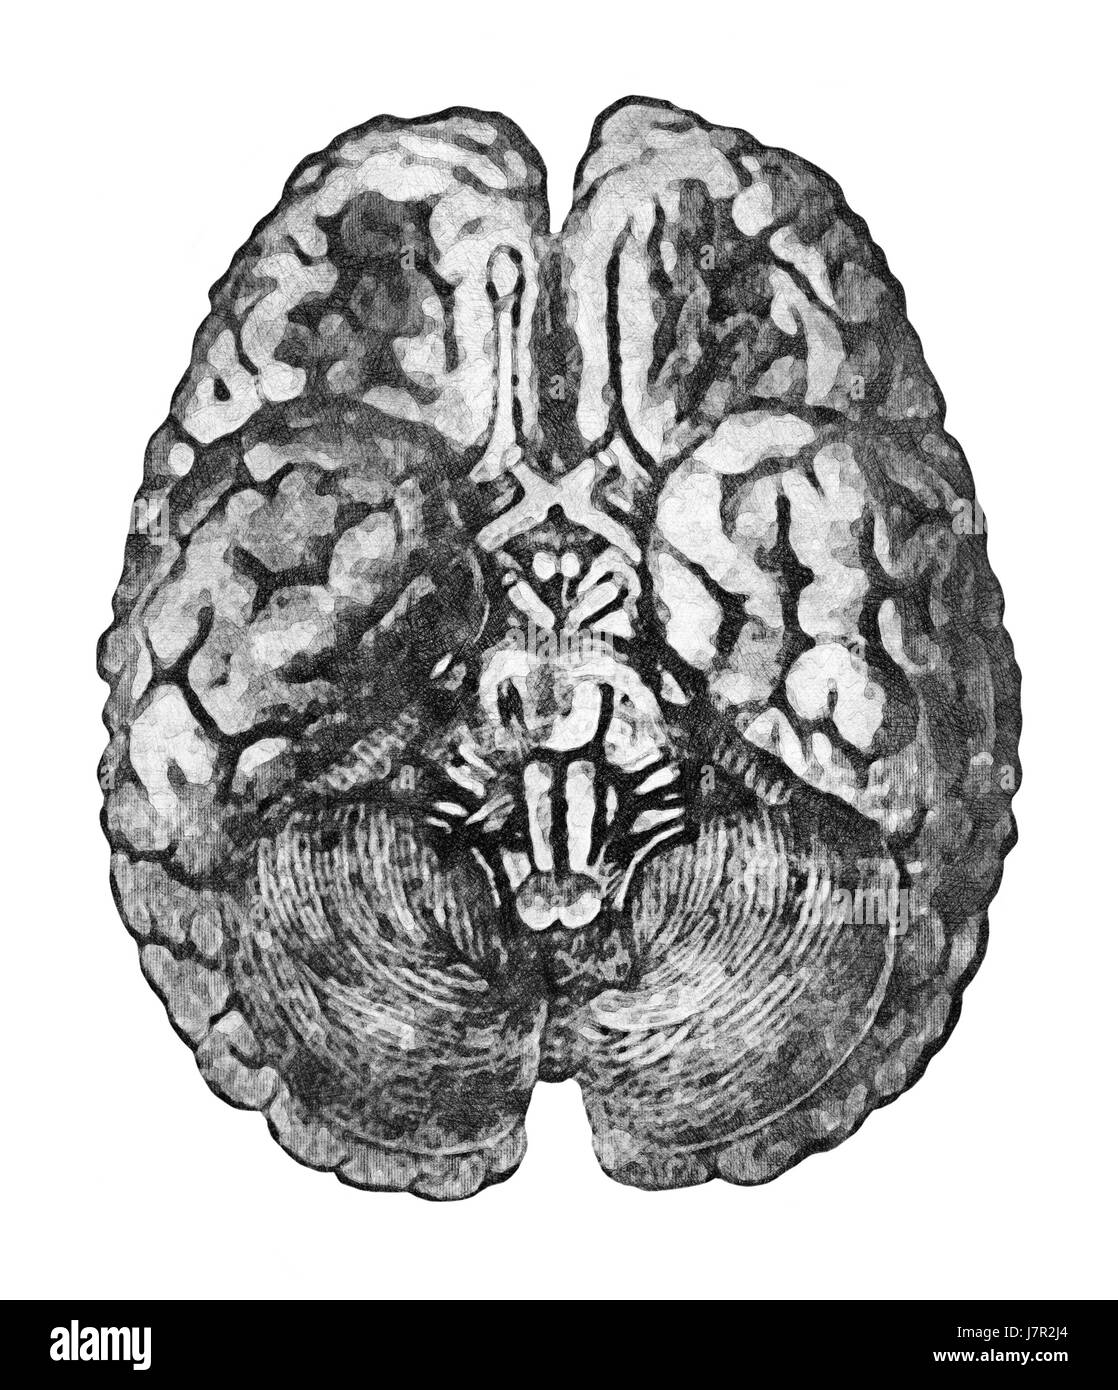 Brain Drawing Old Black and White Stock Photos & Images - Alamy